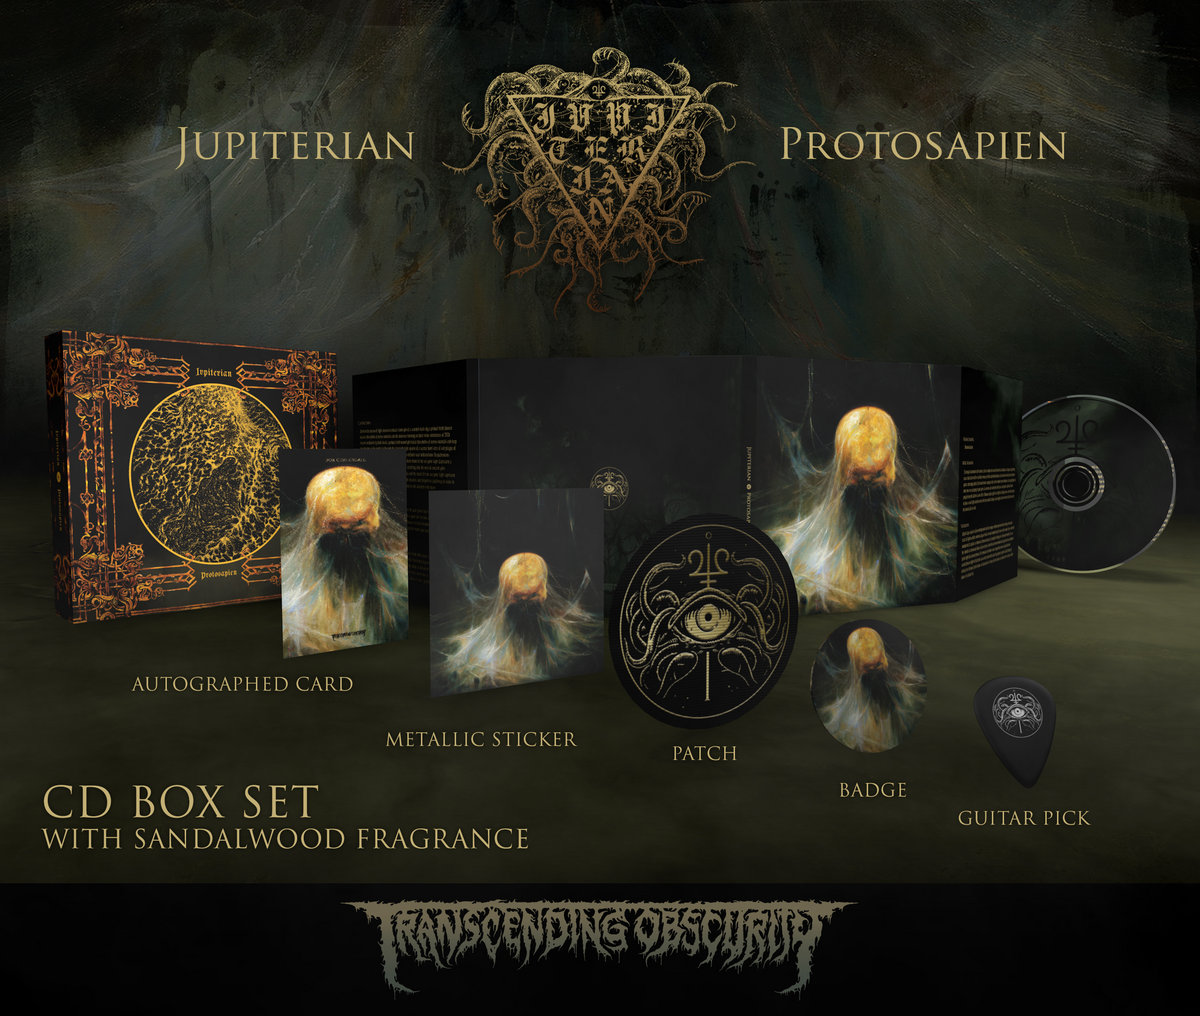 JUPITERIAN - Protosapien Autographed CD Box Set (Limited to 175)